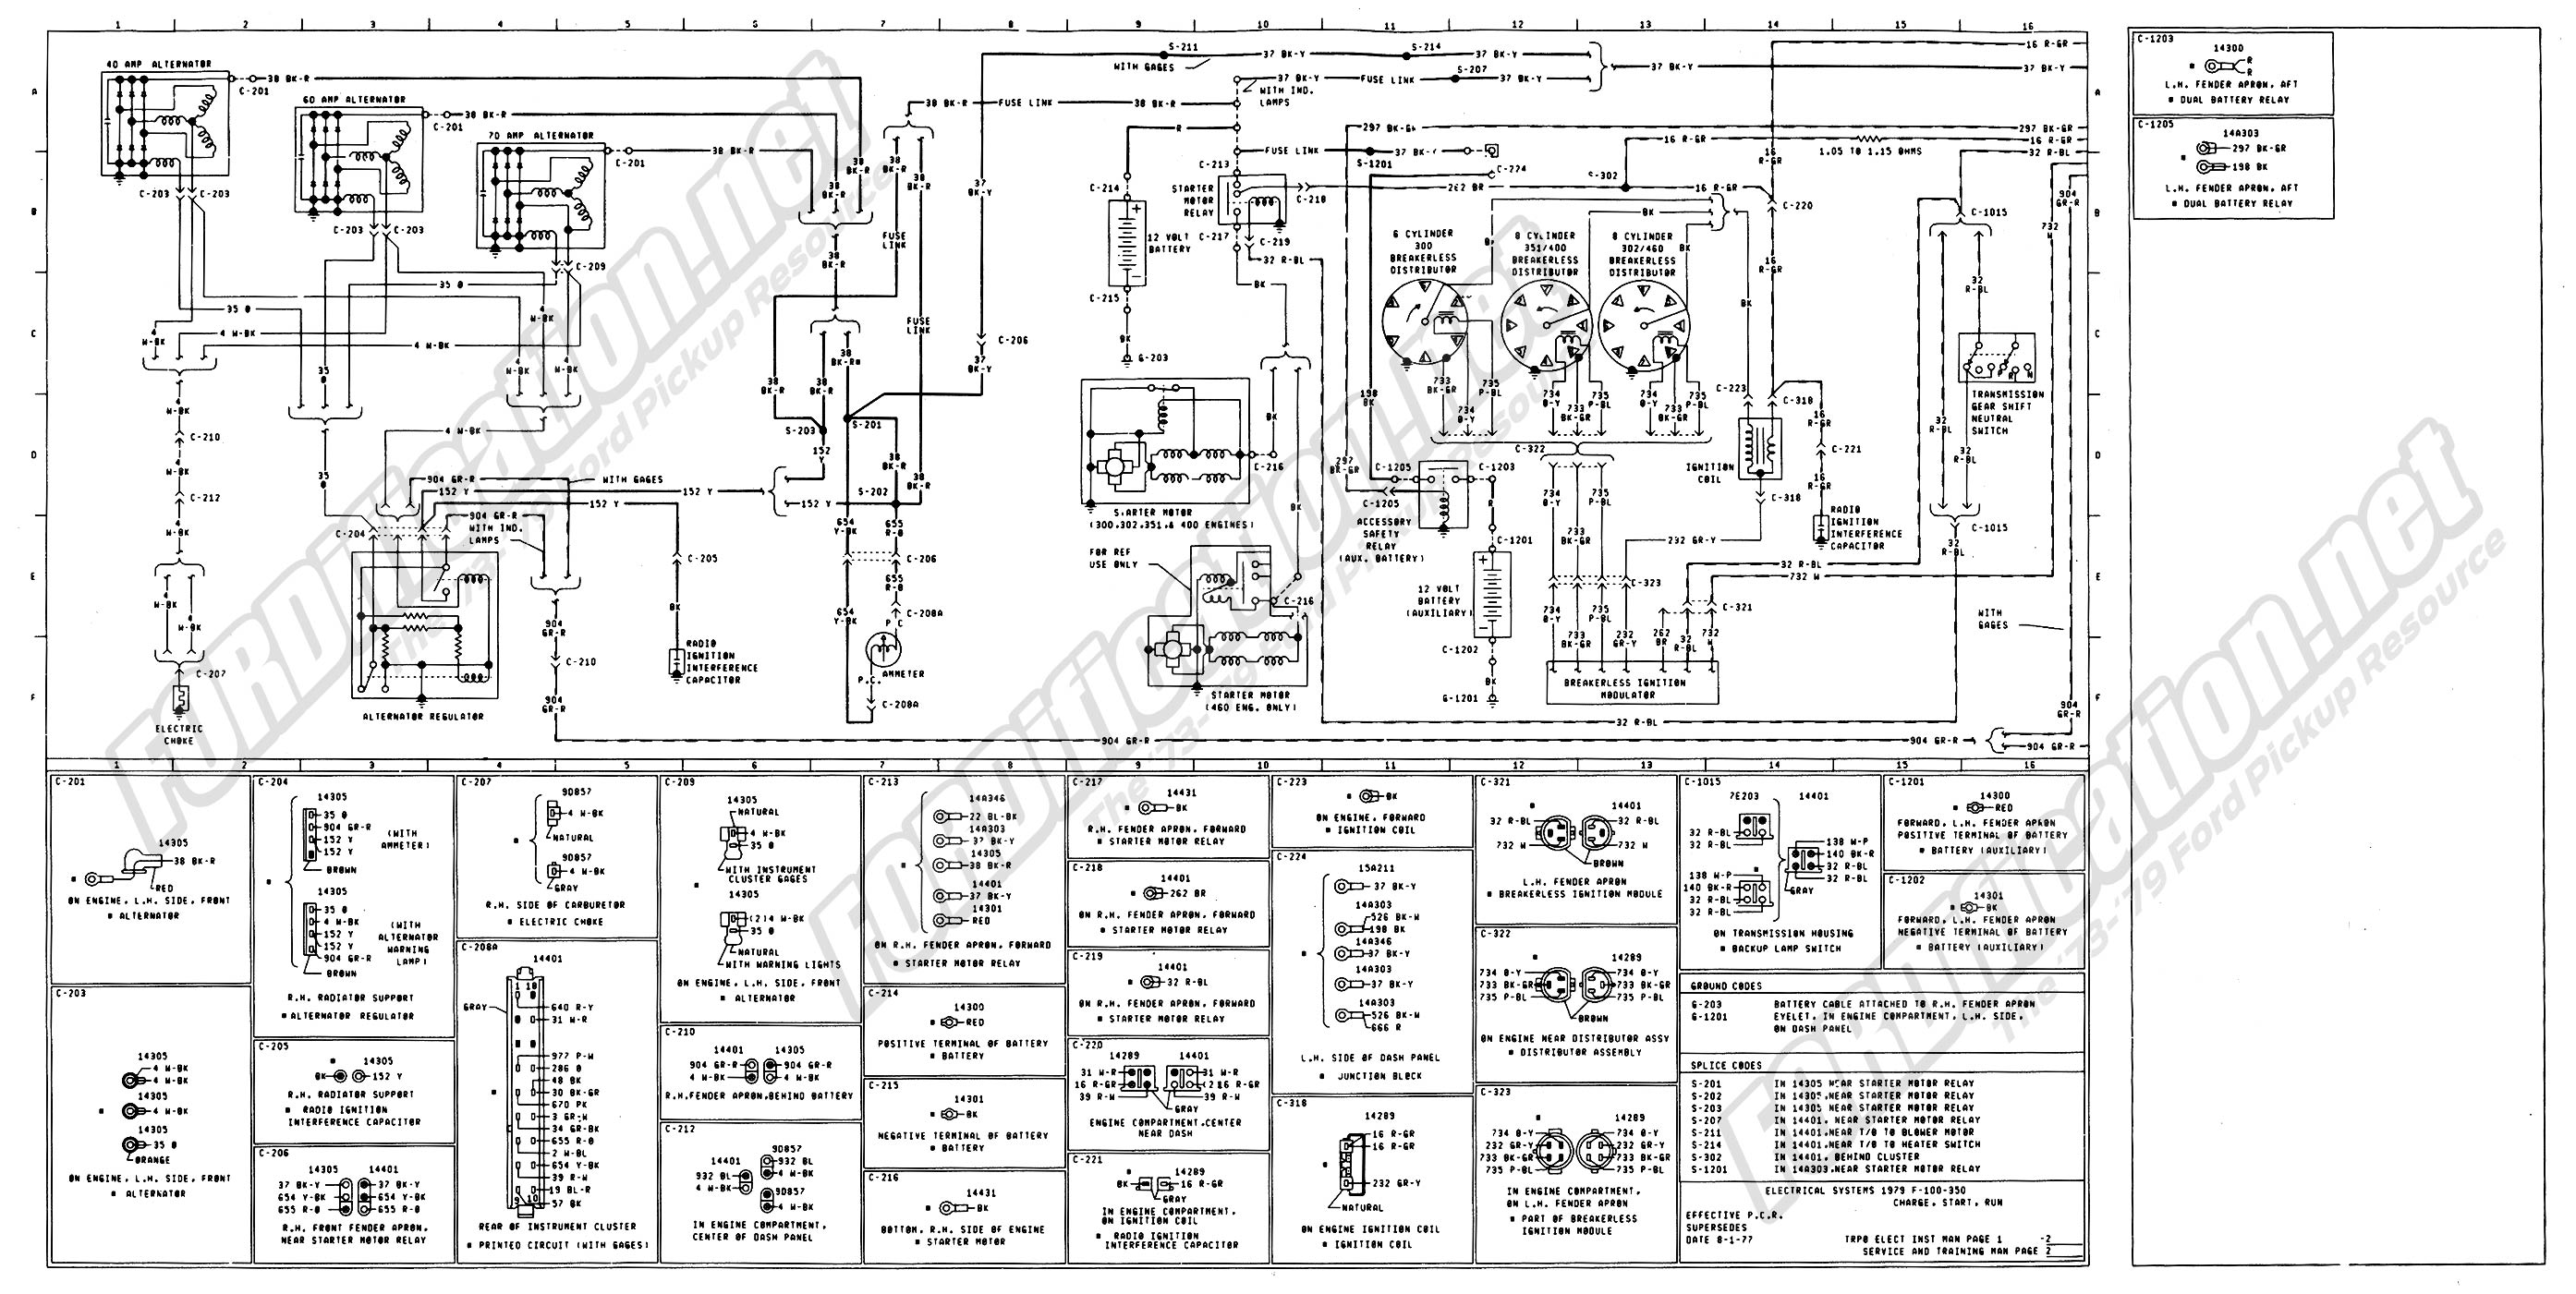 wiring_79master_2of9 1973 1979 ford truck wiring diagrams & schematics fordification net 1999 ford f350 wiring diagram at mr168.co